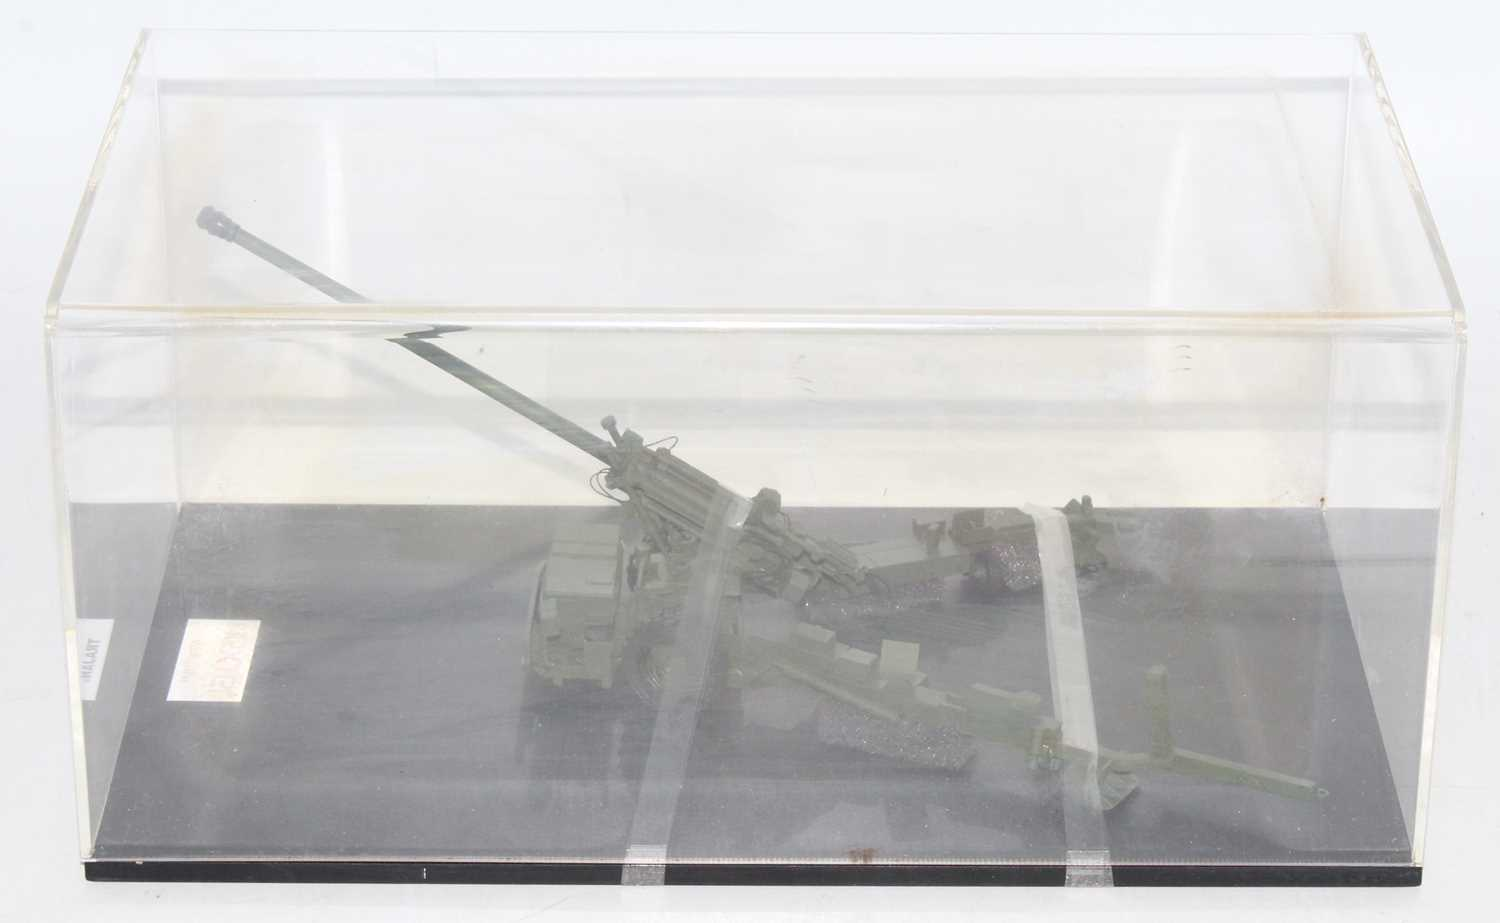 A Nexter model No. 48579V 1/48 scale resin factory hand built model of a Trajan field gun, housed in - Image 2 of 2